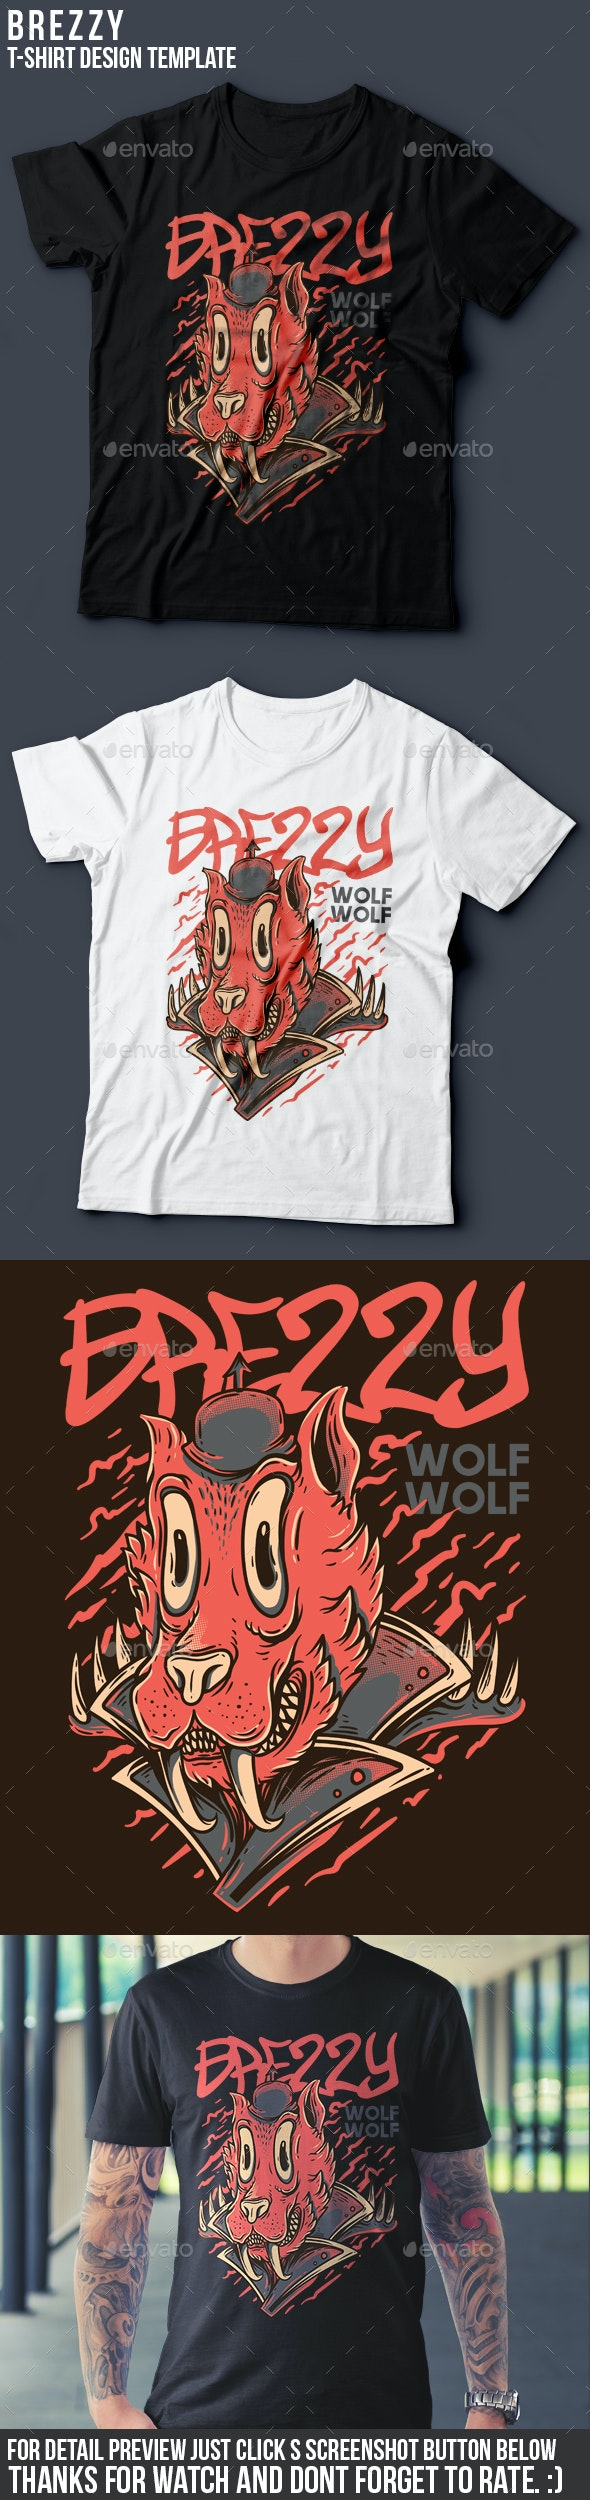 Brezzy T-Shirt Design - Funny Designs